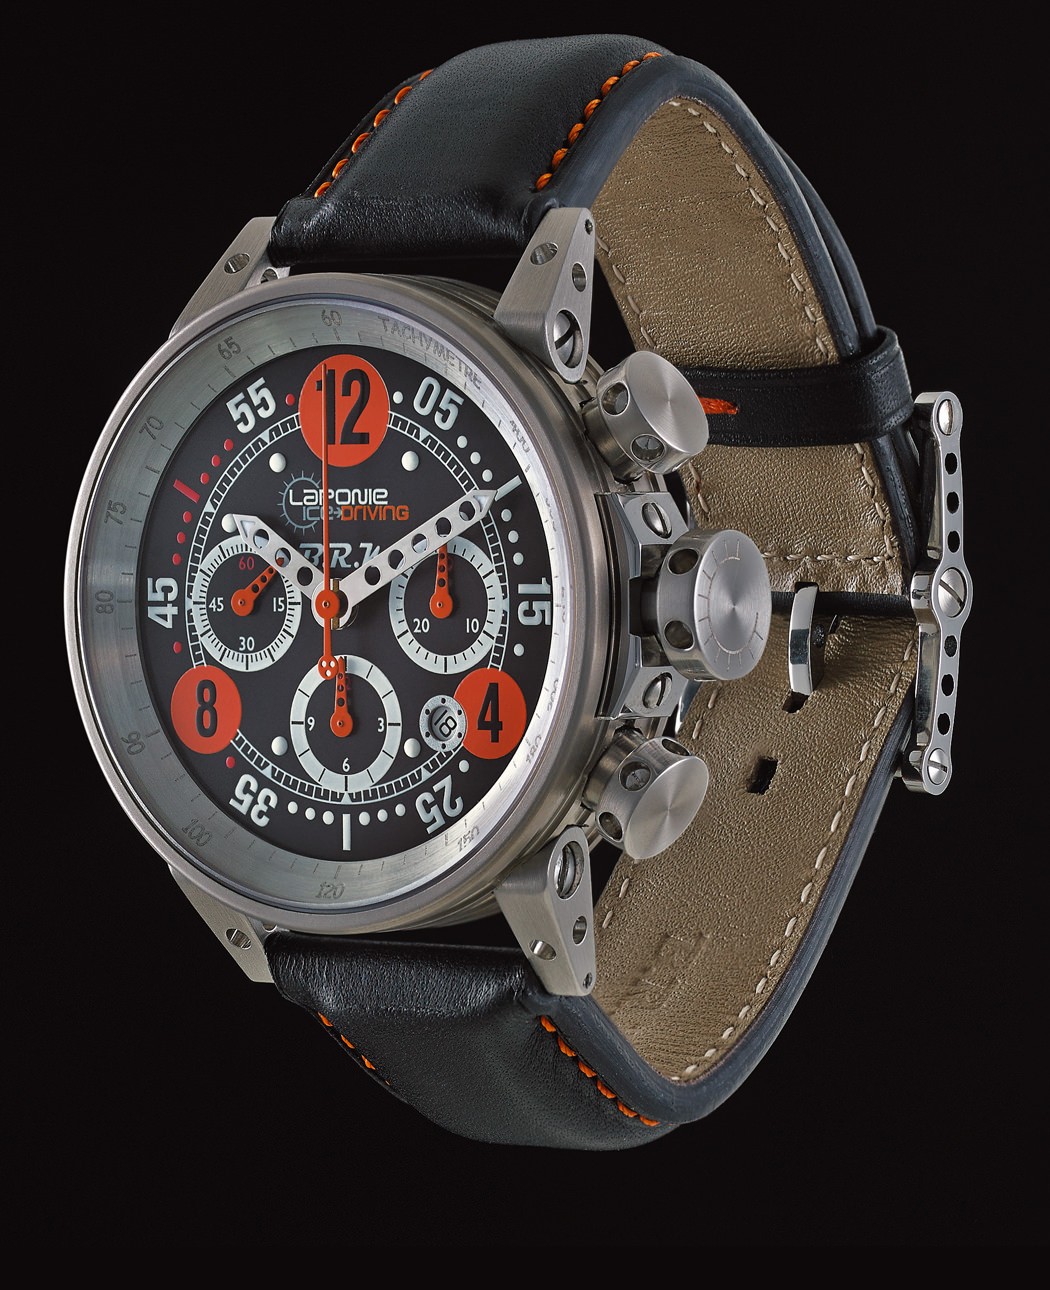 LAPONIE ICE DRIVING LIMITED EDITION CHRONOGRAPH de BRM